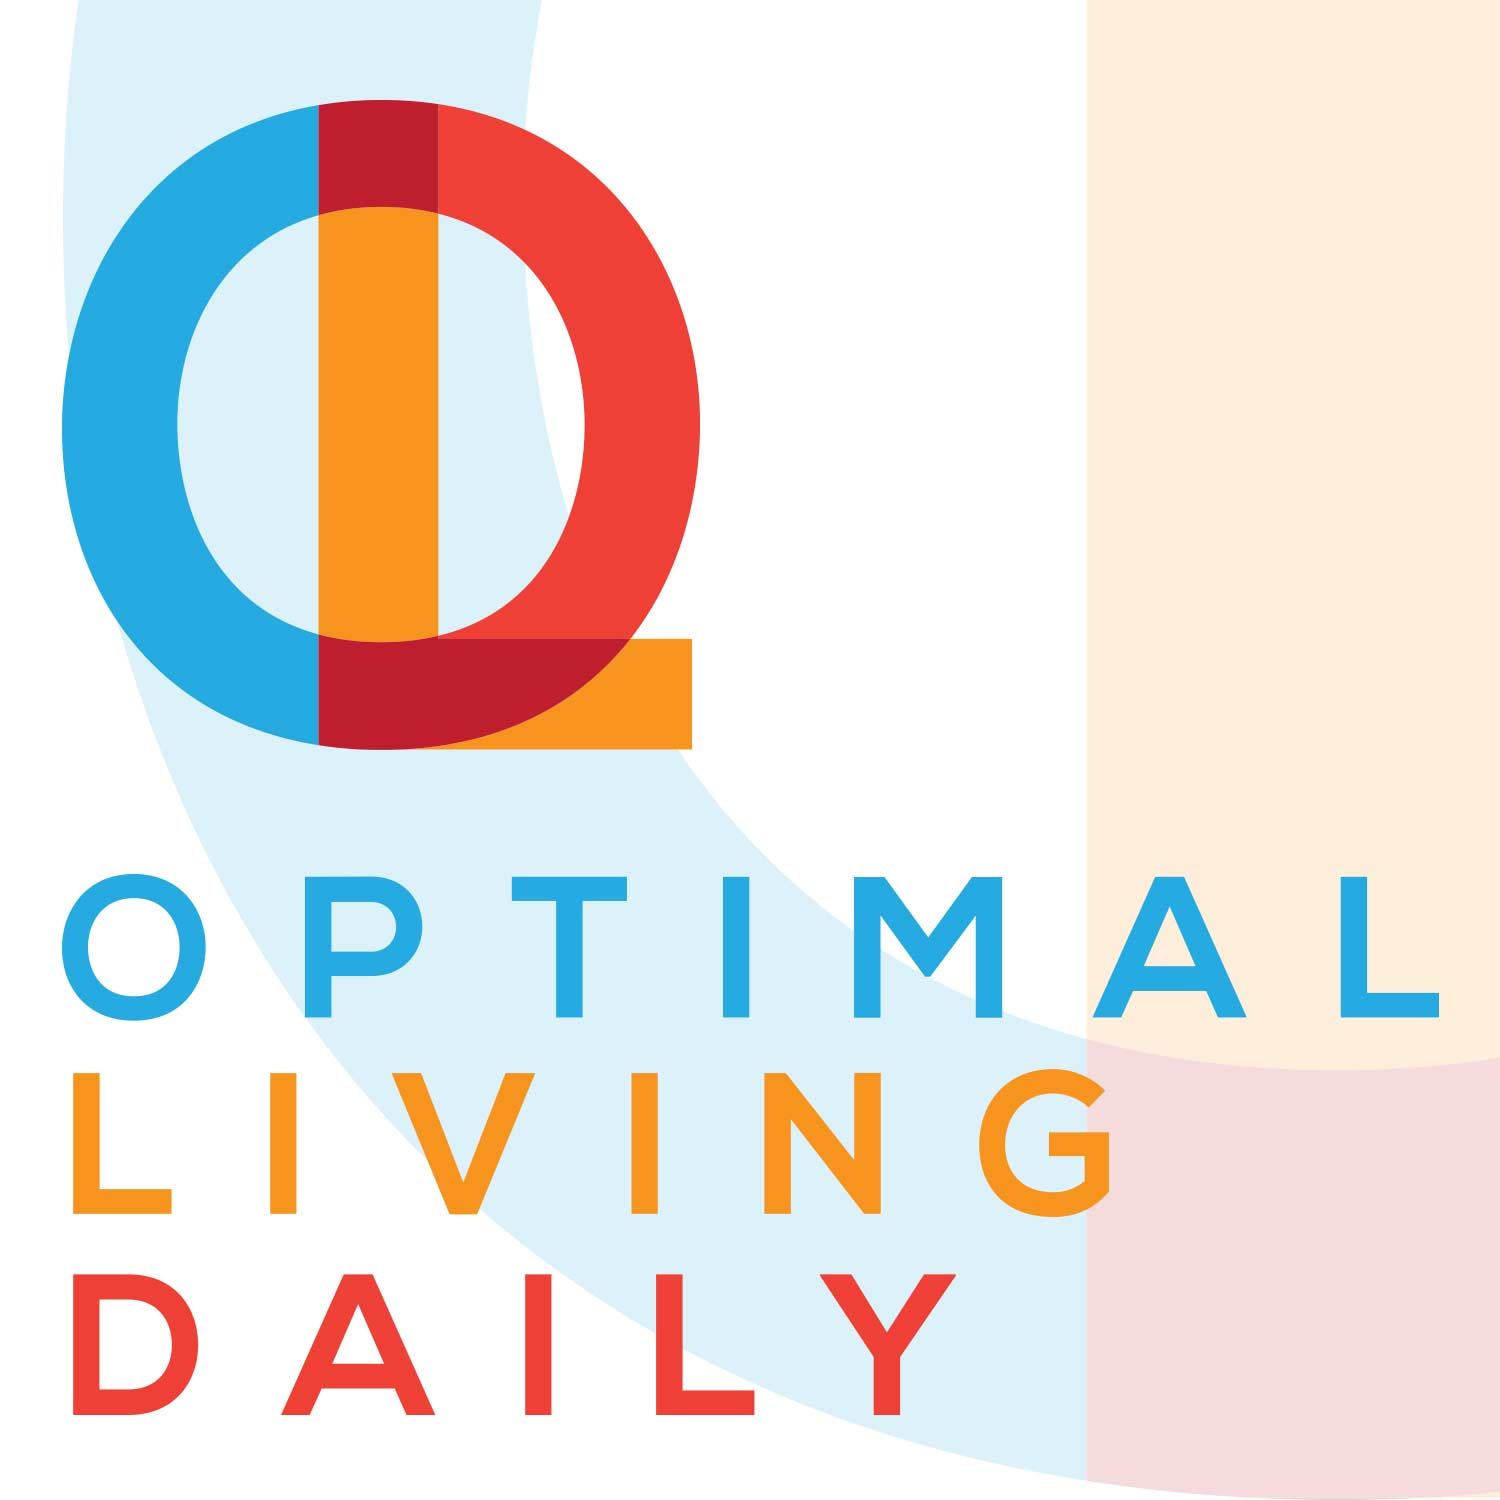 optimallivingdaily logo